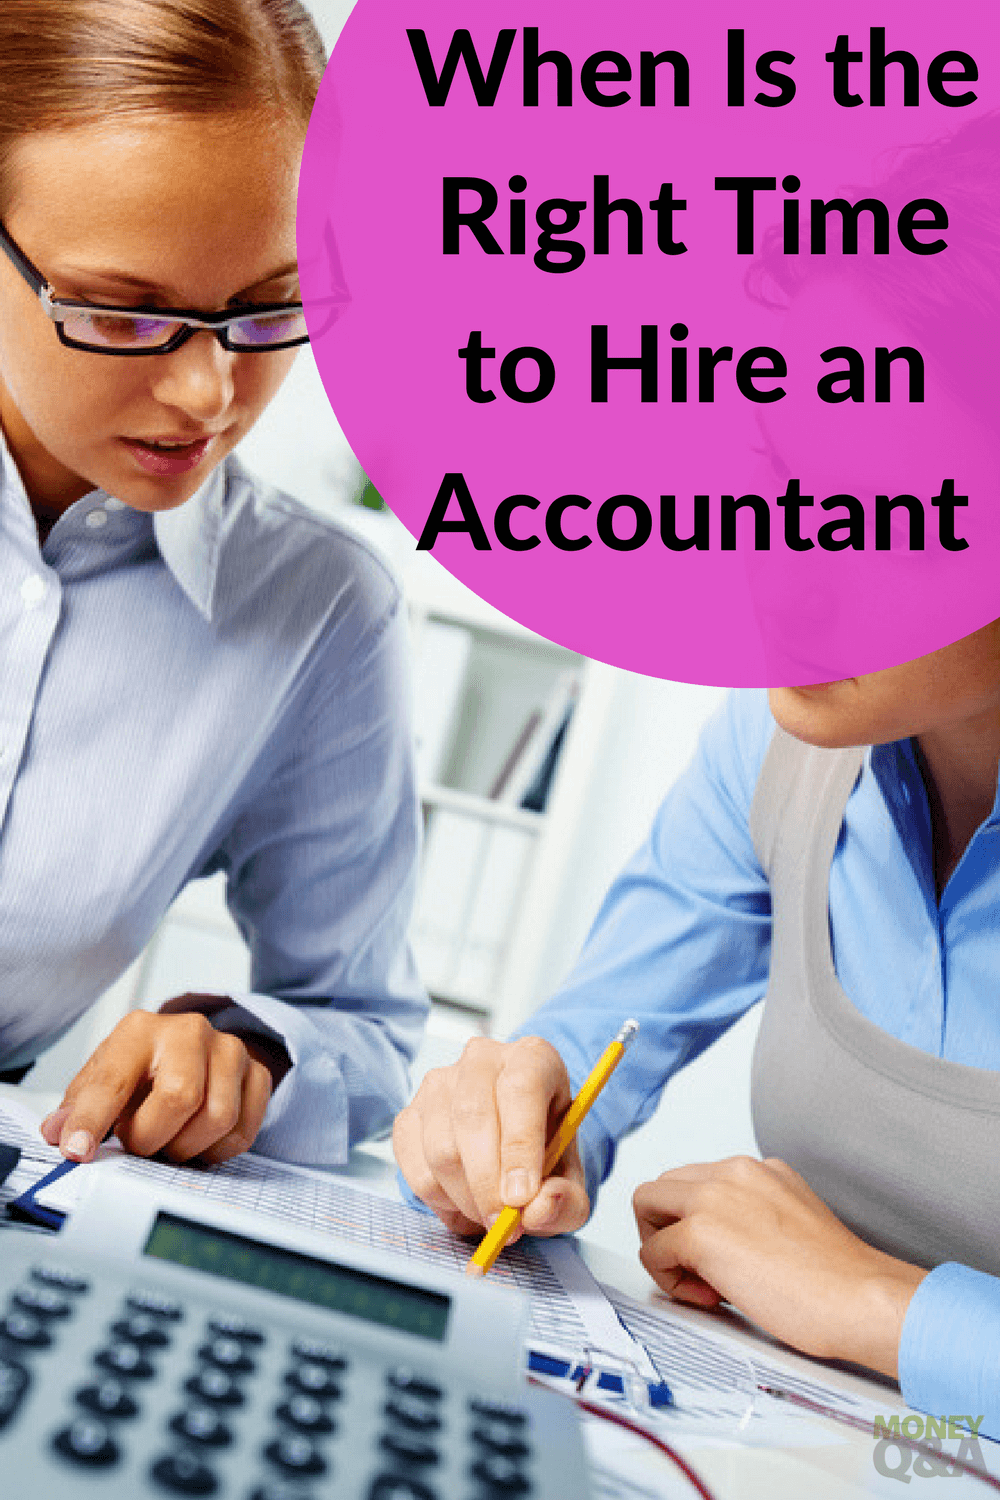 When Should You Hire an Accountant